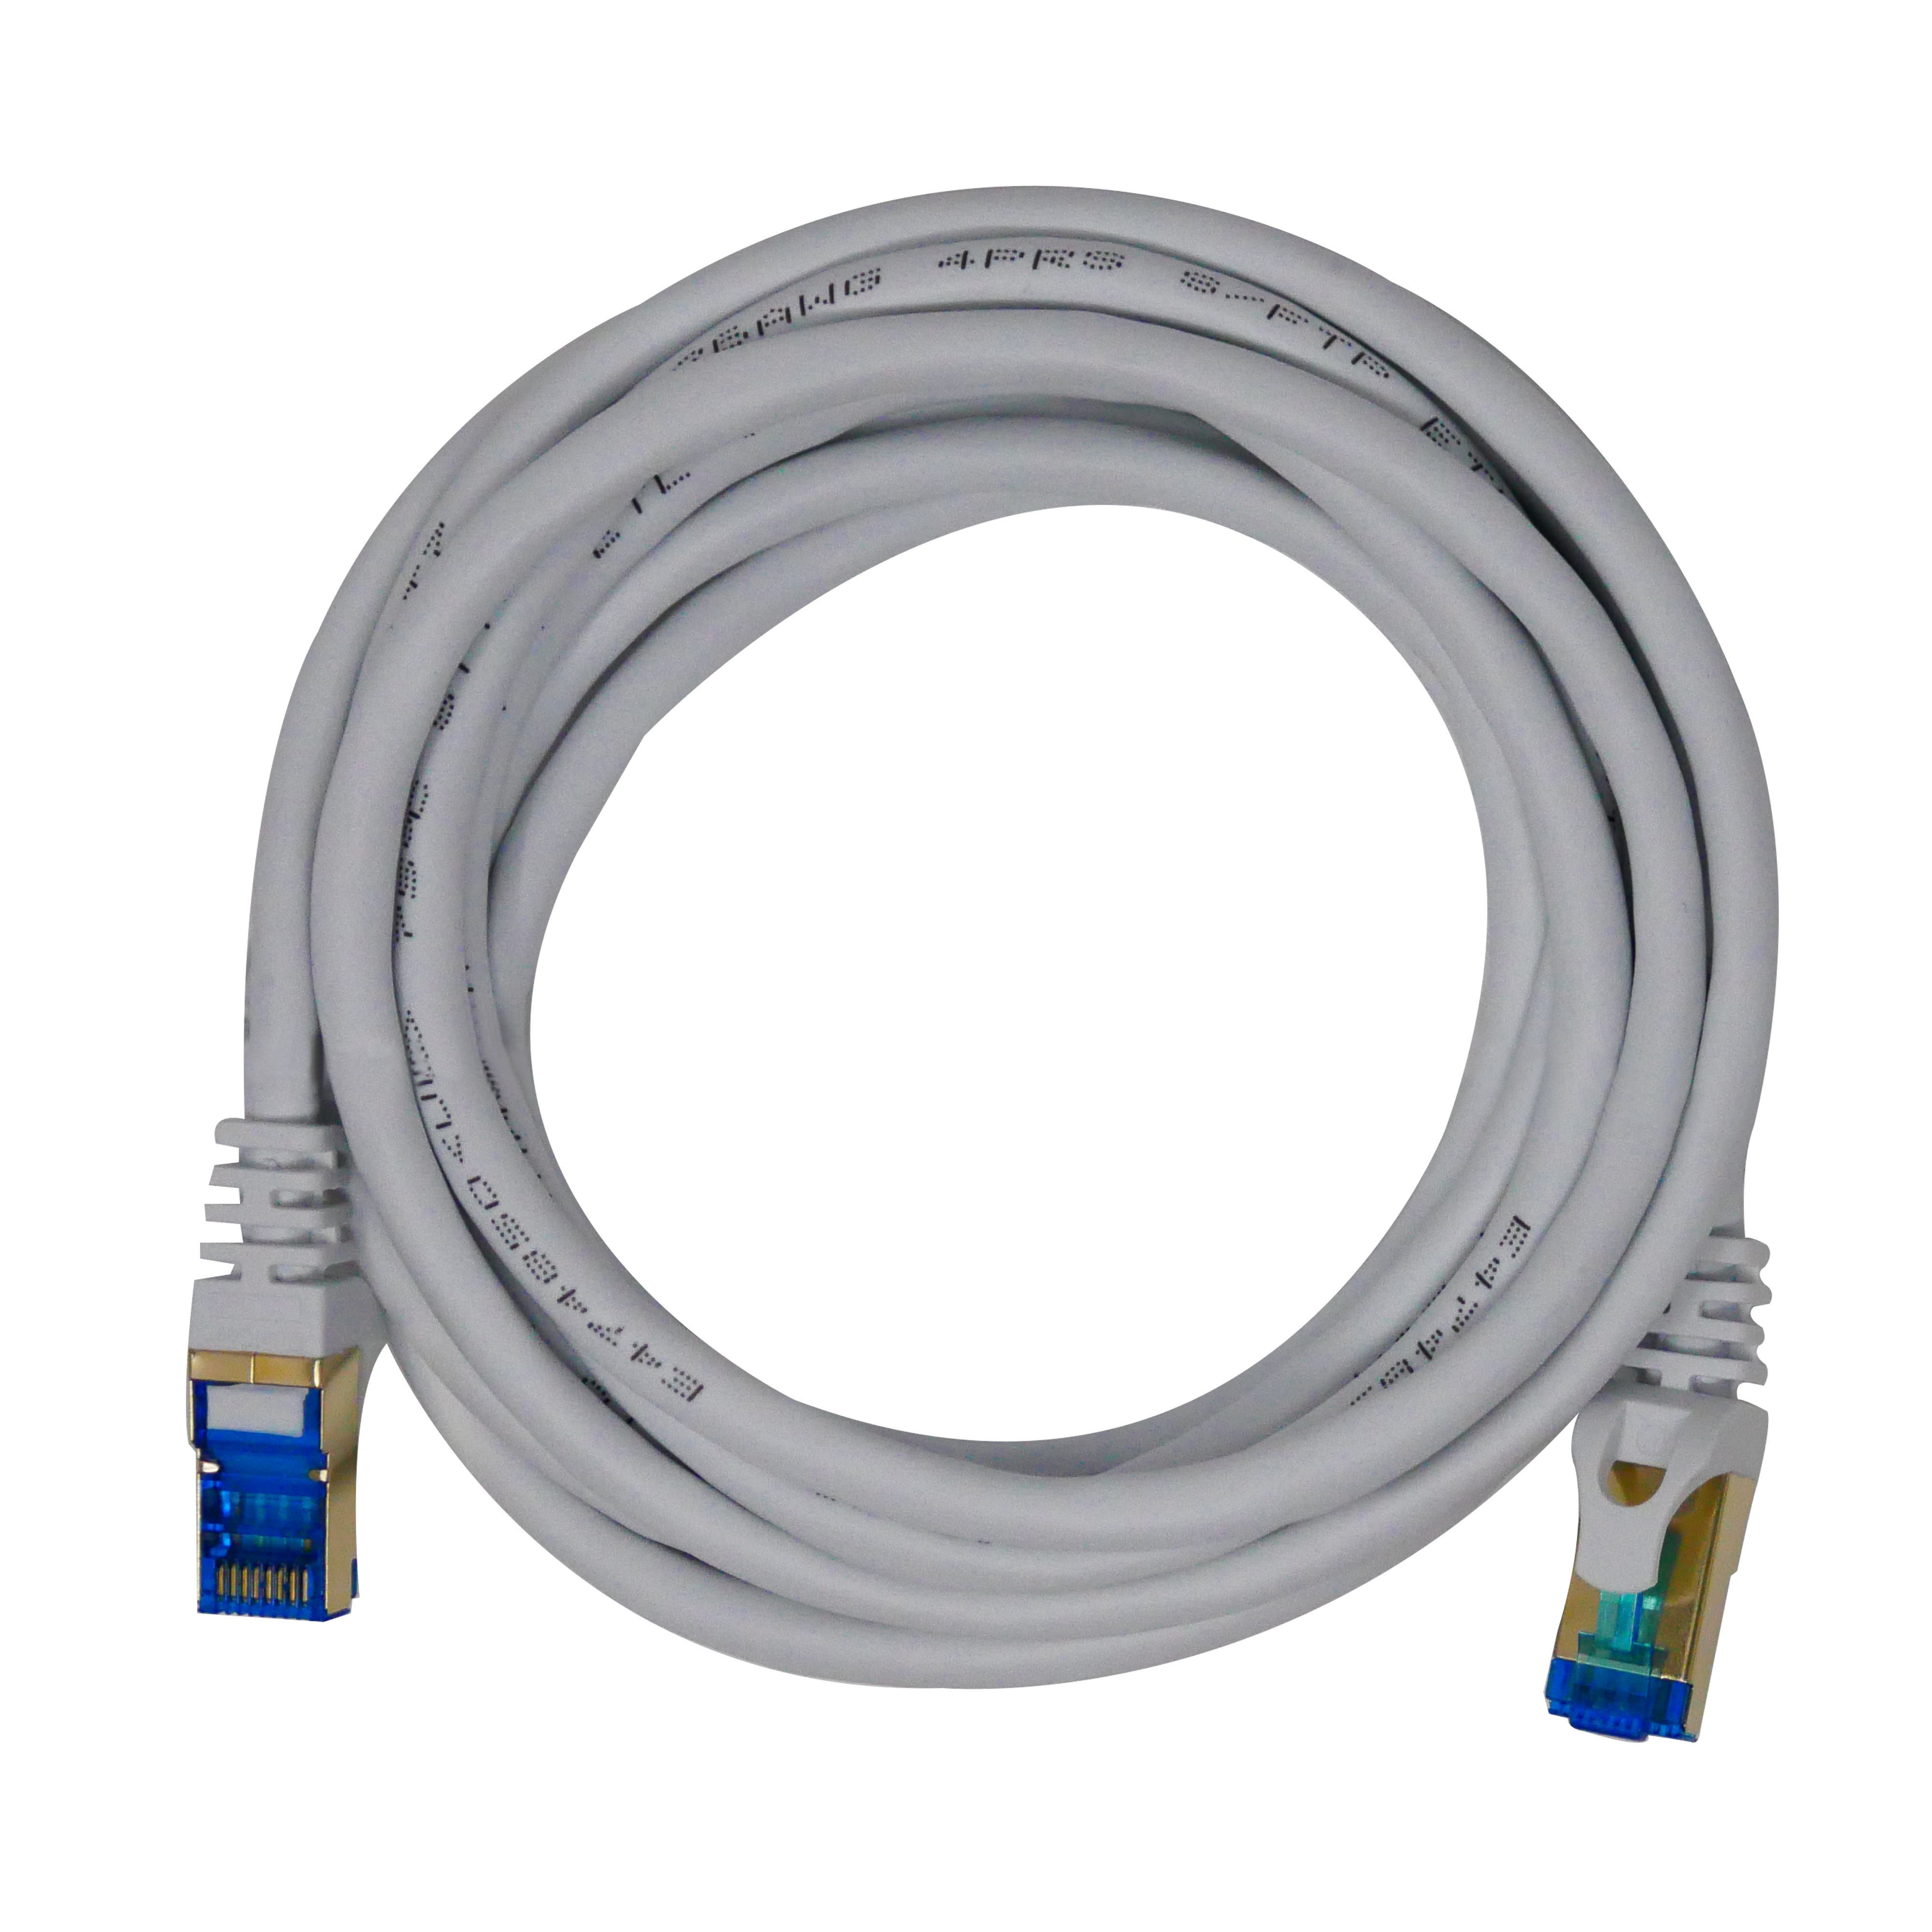 QualGear QG-CAT7R-6FT-WHT CAT 7 S/FTP Ethernet Cable Length 6 feet - 26 AWG, 10 Gbps, Gold Plated Contacts, RJ45, 99.99% OFC Copper, Color White